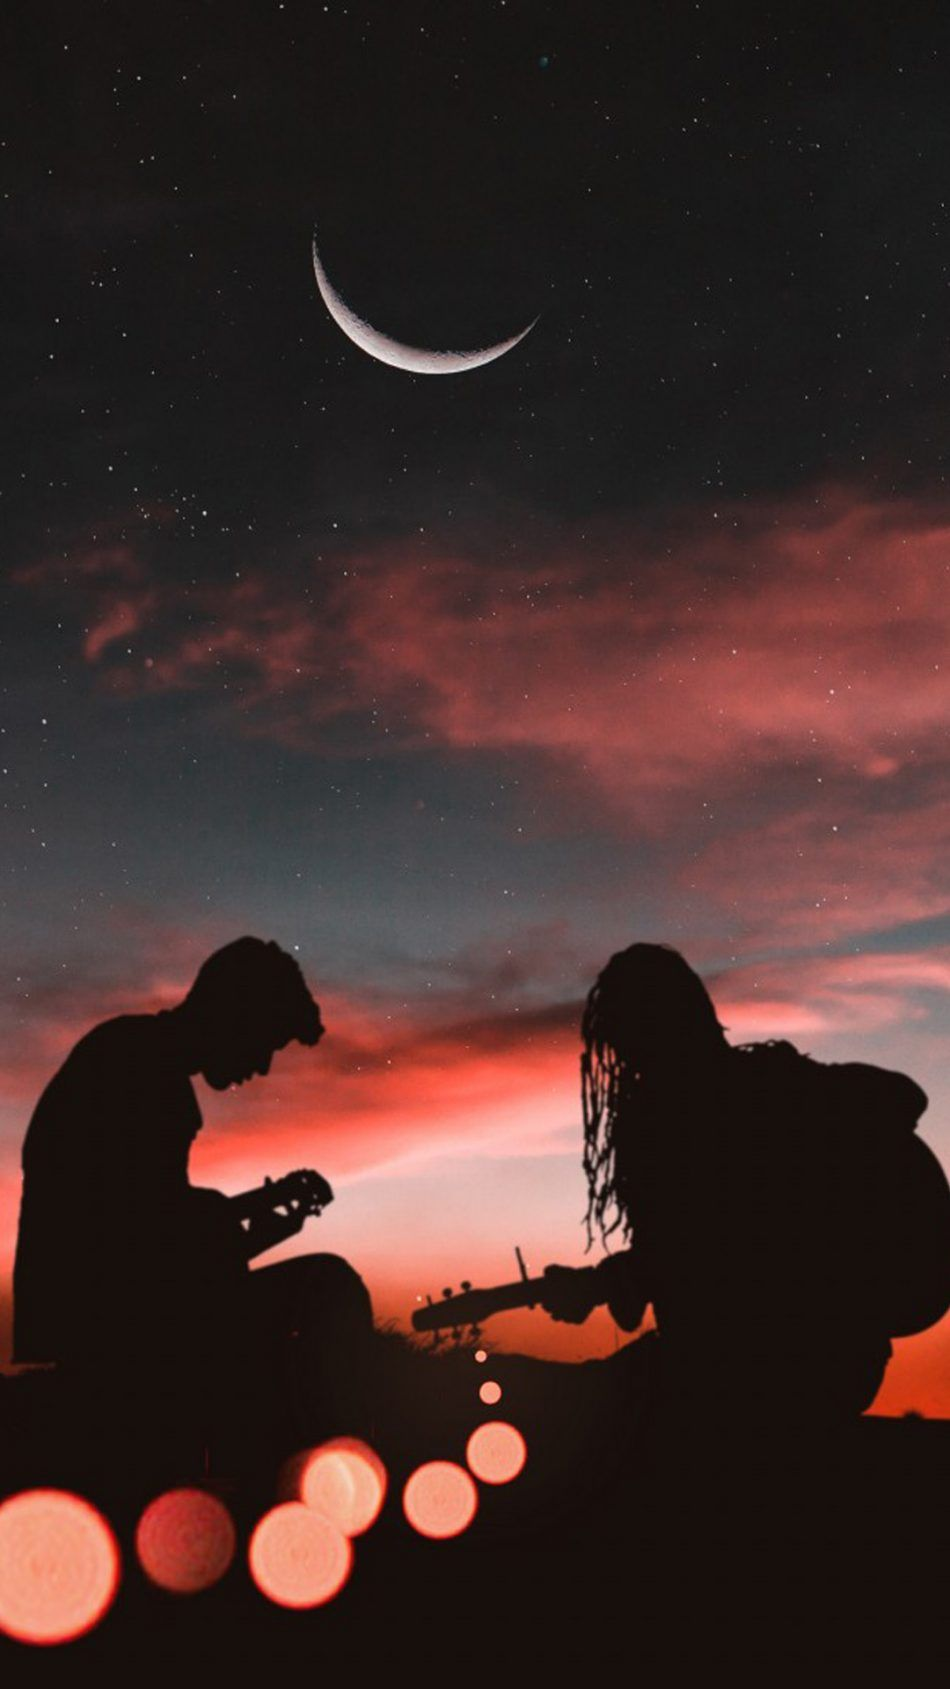 Relationship Love Quotes For Boyfriend - HD Wallpaper